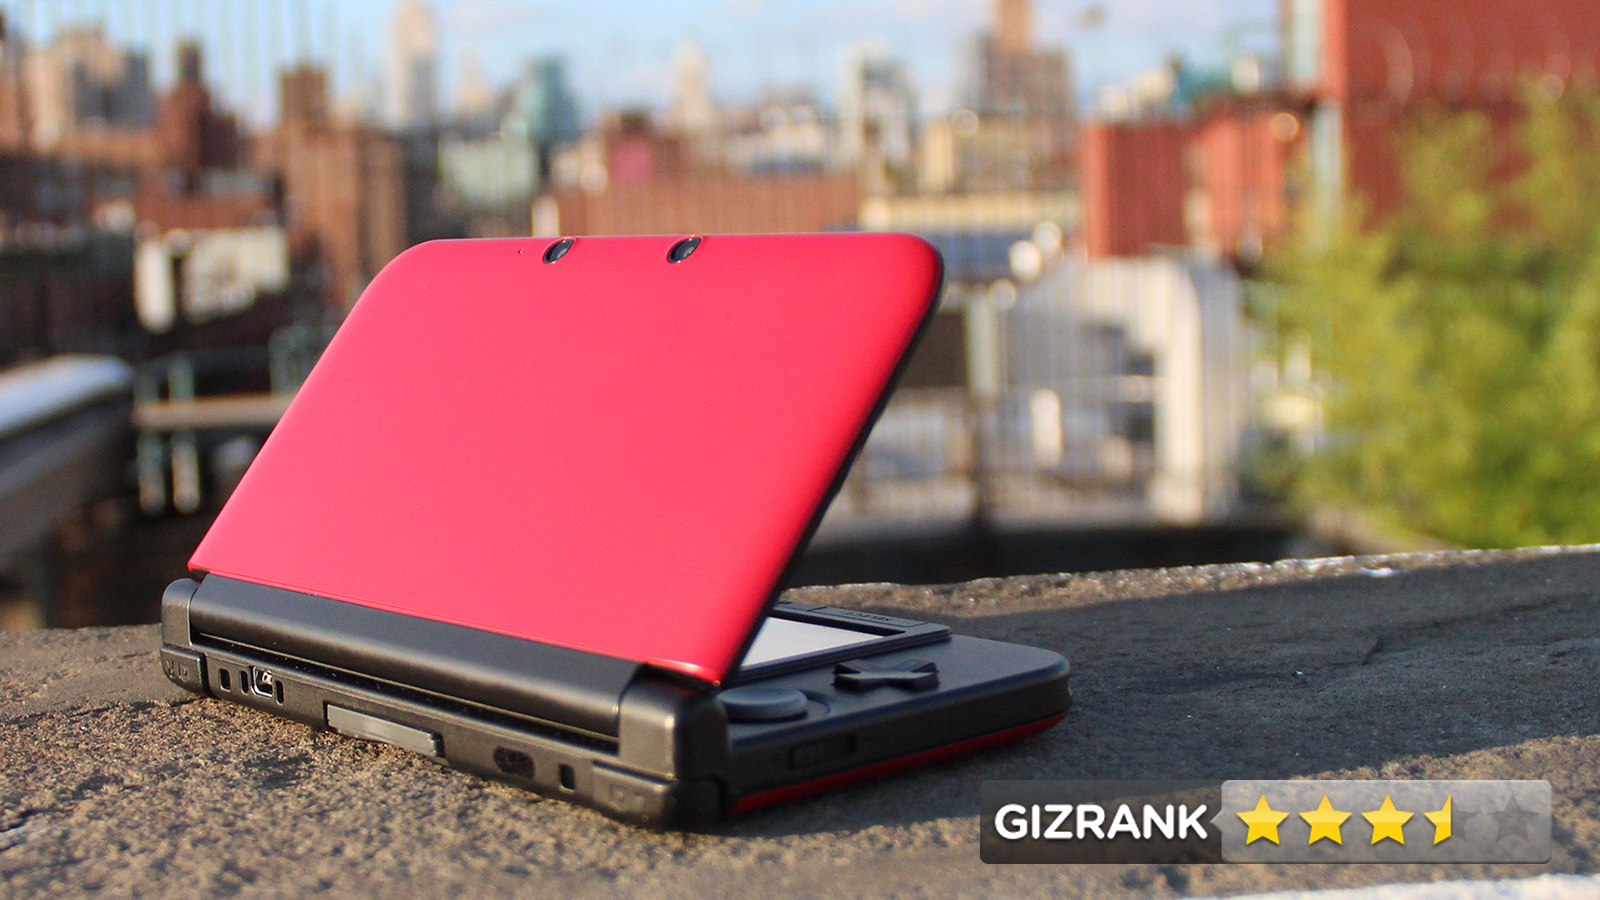 Click here to read Nintendo 3DS XL Review: Bigger Screen, Better 3D, Still Kinda Clumsy